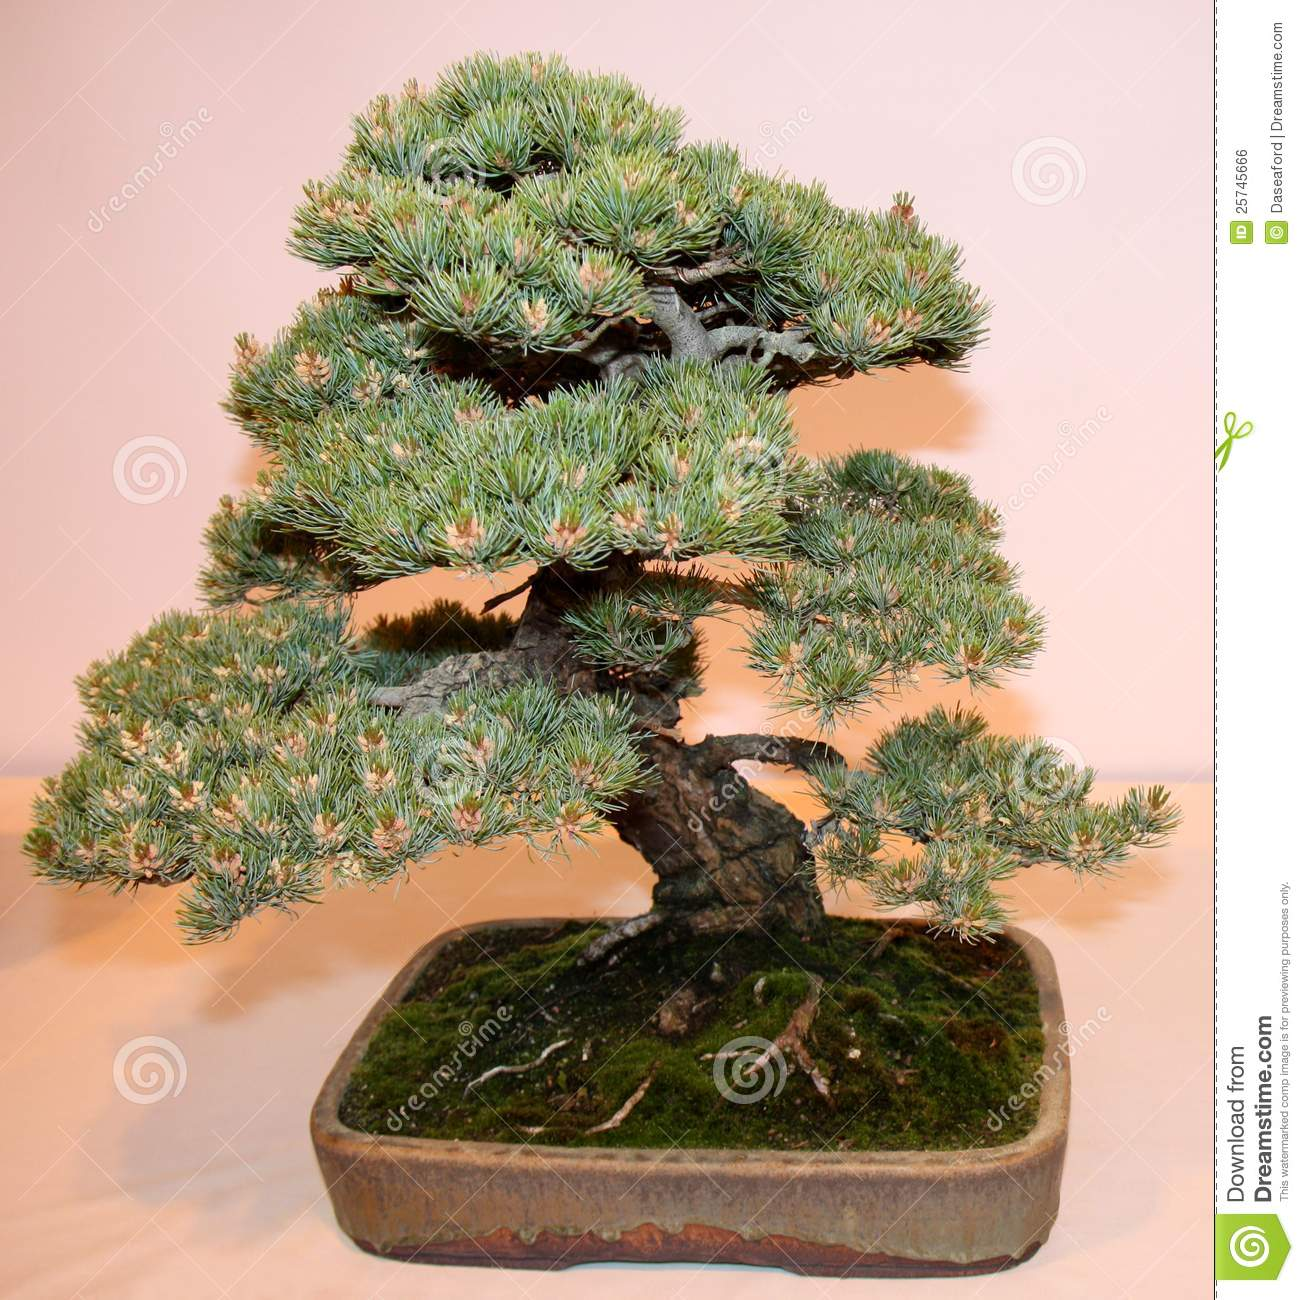 bonsai miniature tree royalty free stock image image 25745666. Black Bedroom Furniture Sets. Home Design Ideas